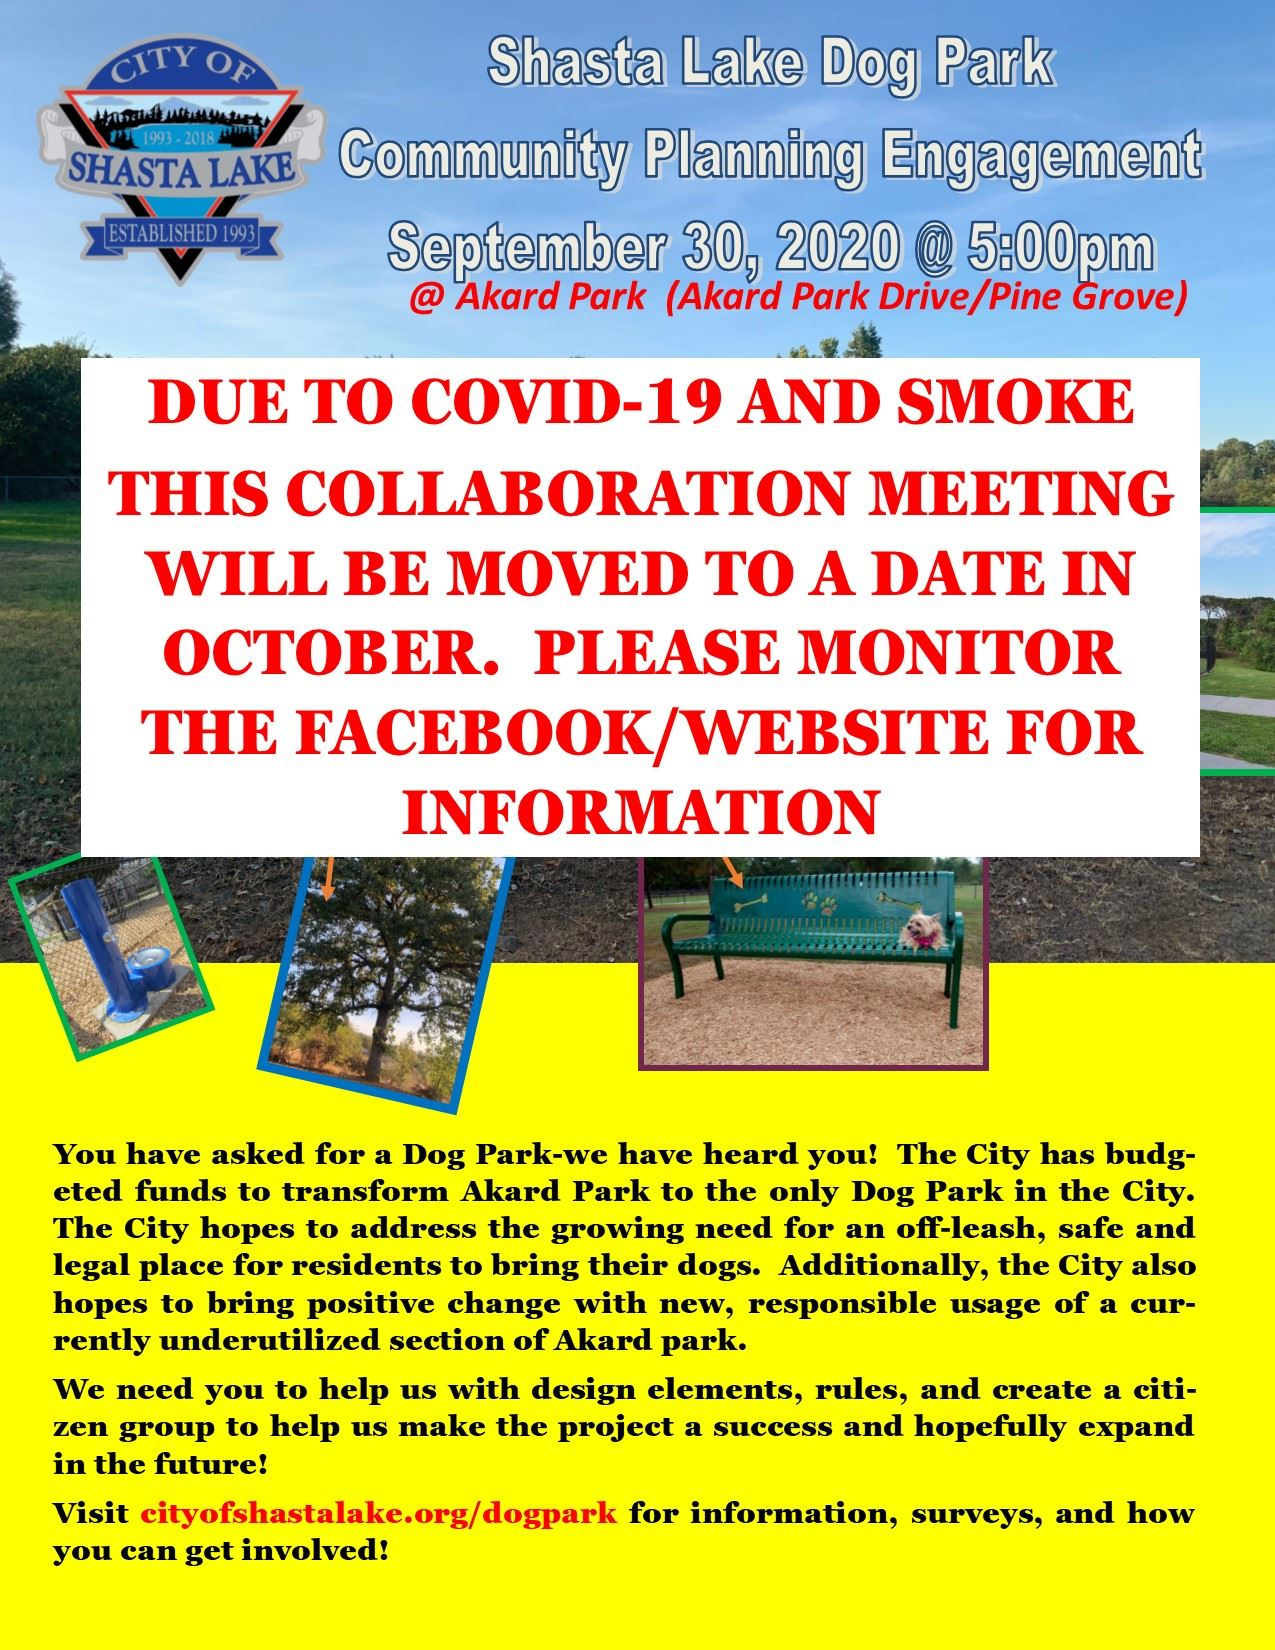 Dog Park Community Collaboration Meeting CANCEL